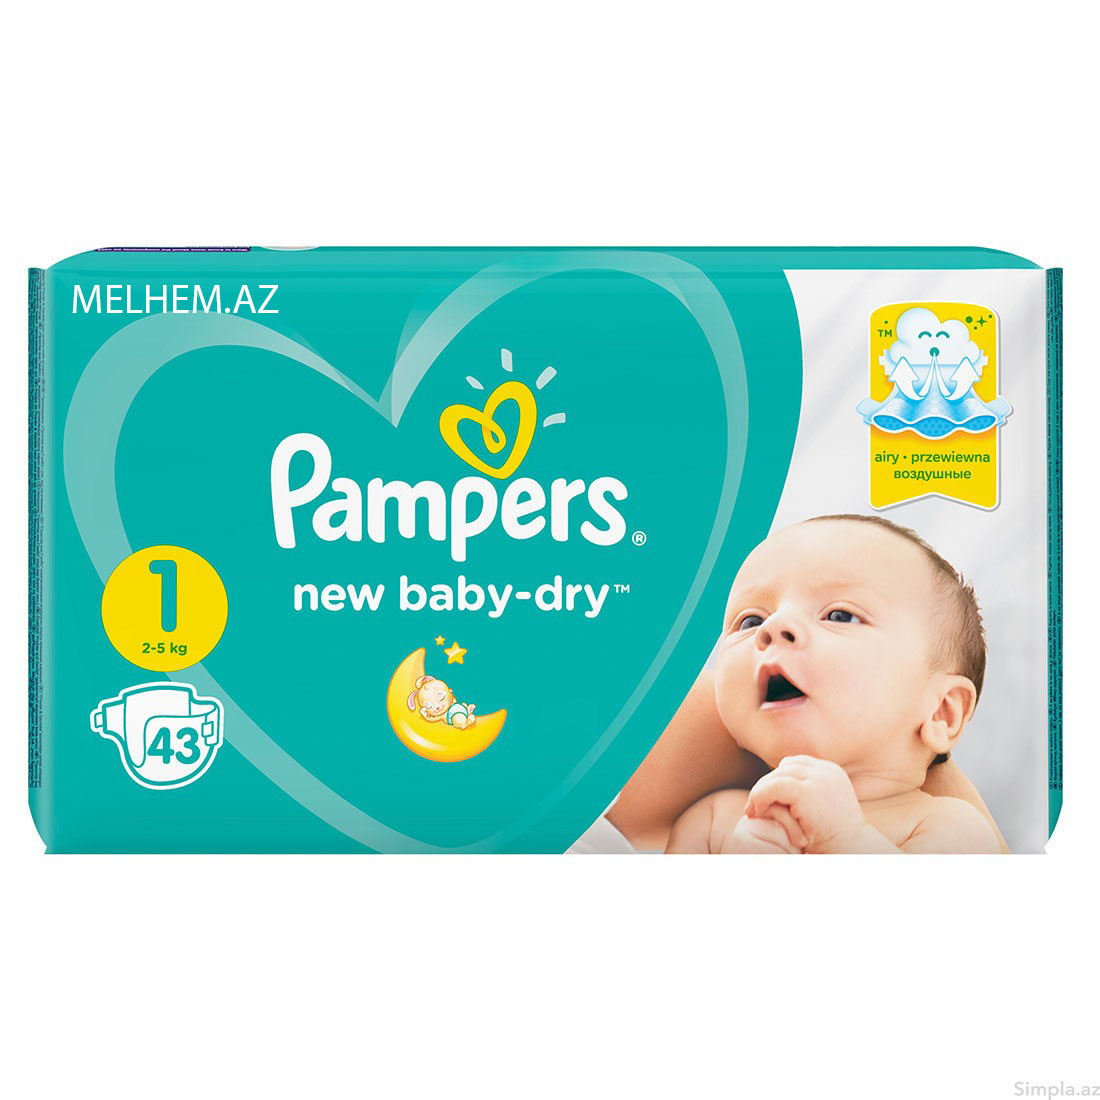 PAMPERS N1 (43 ƏDƏDLİ)